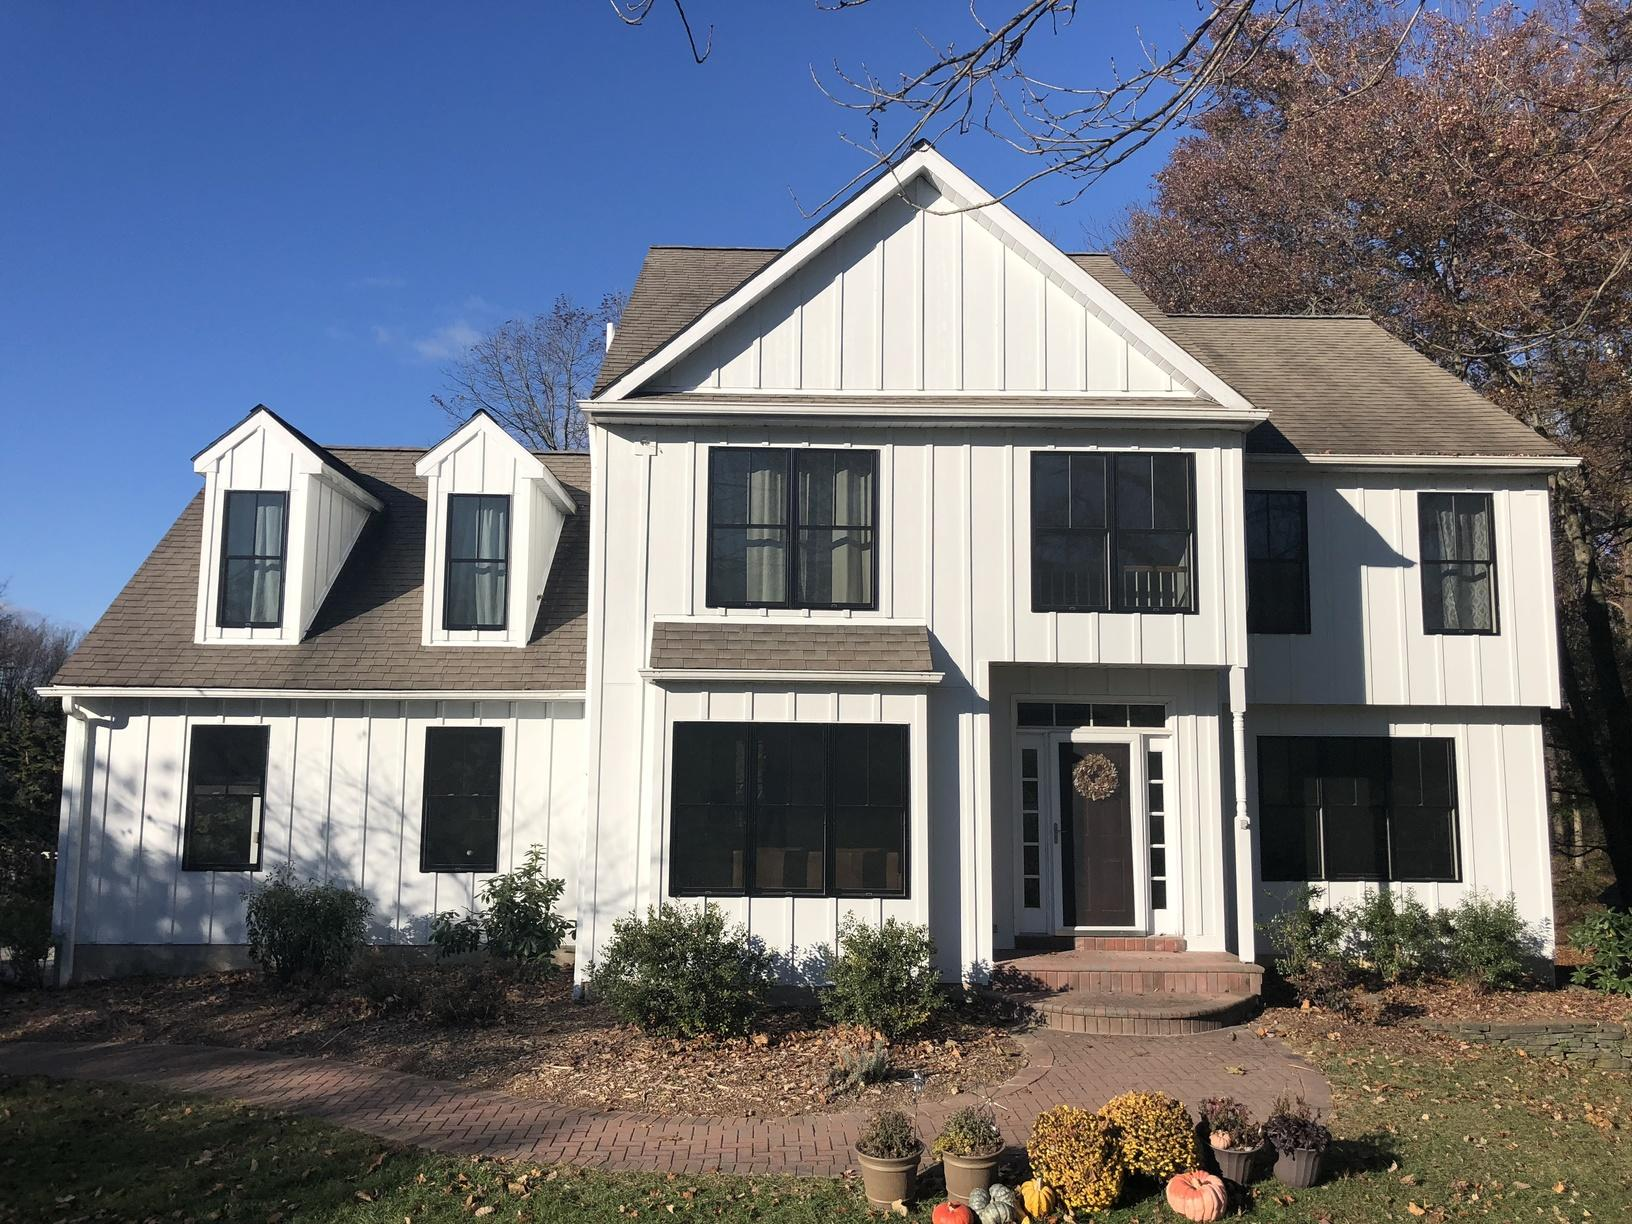 Arctic White James Hardie Batten Board Fiber Cement Siding Installation in Oxford, PA - After Photo